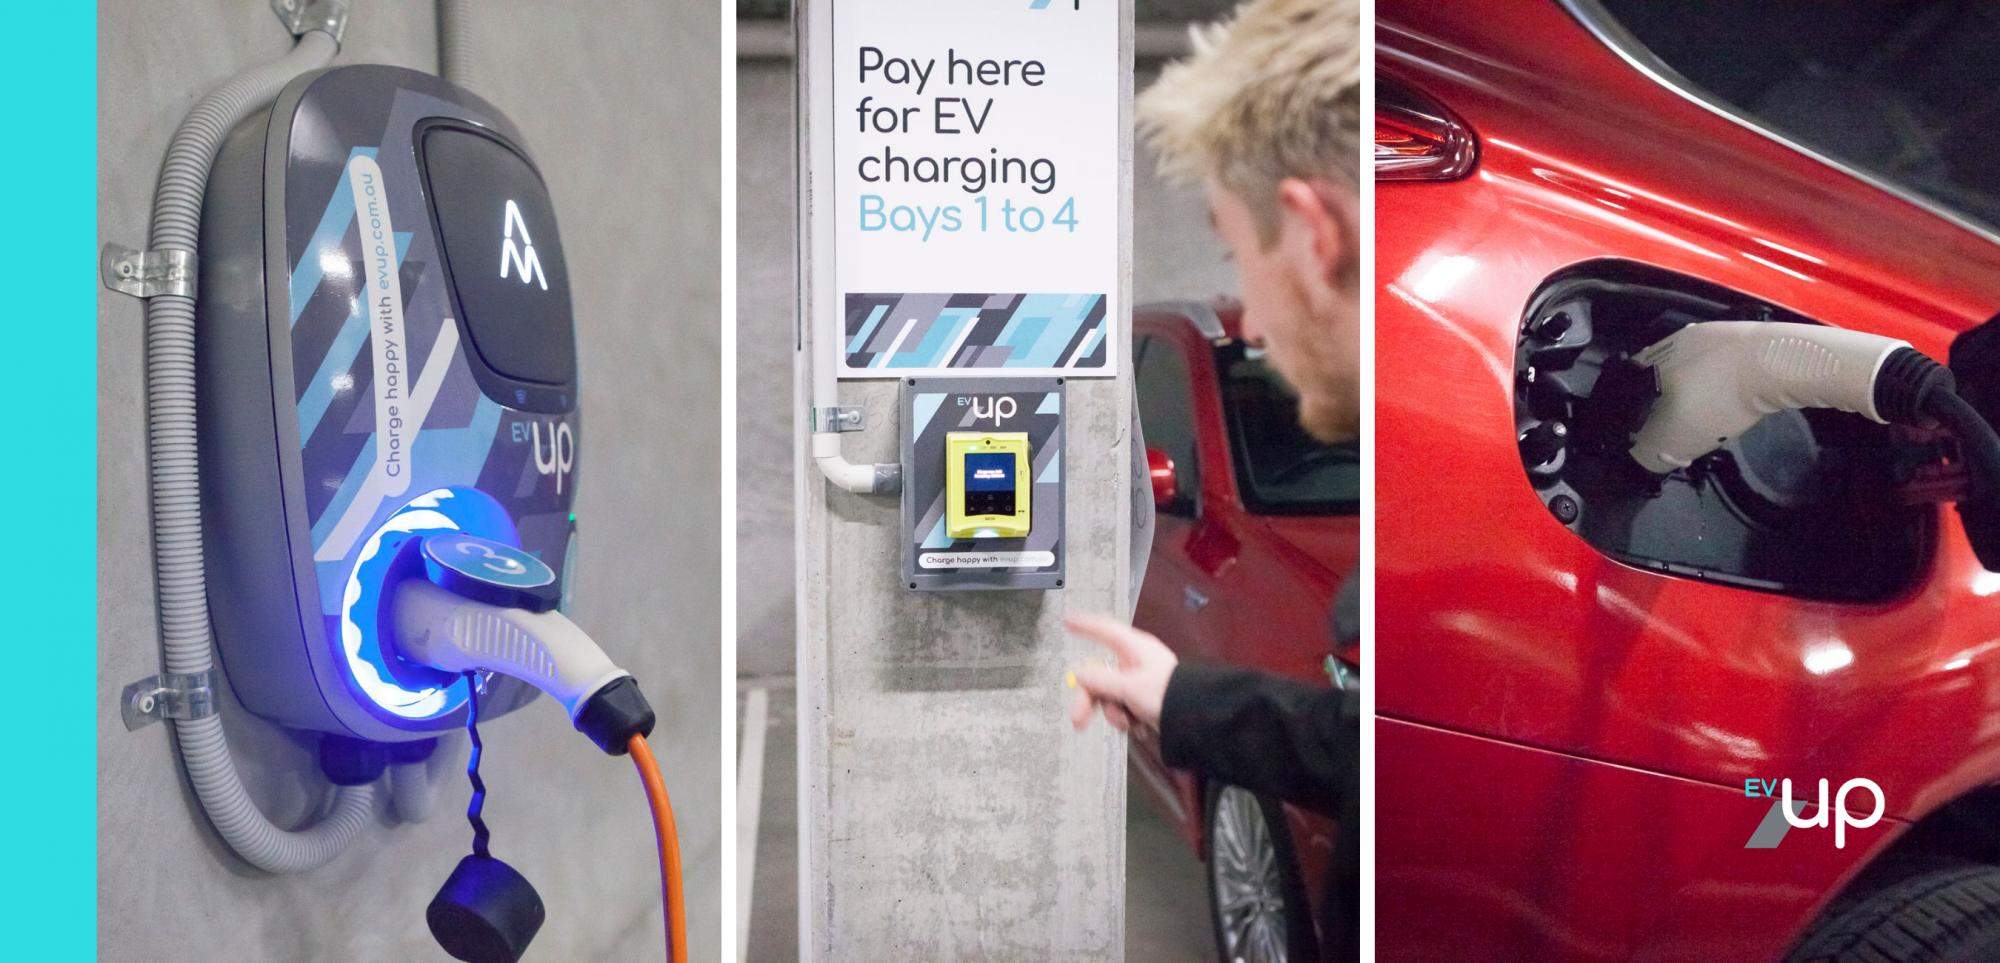 EV charging PayPass tap and go payment systems